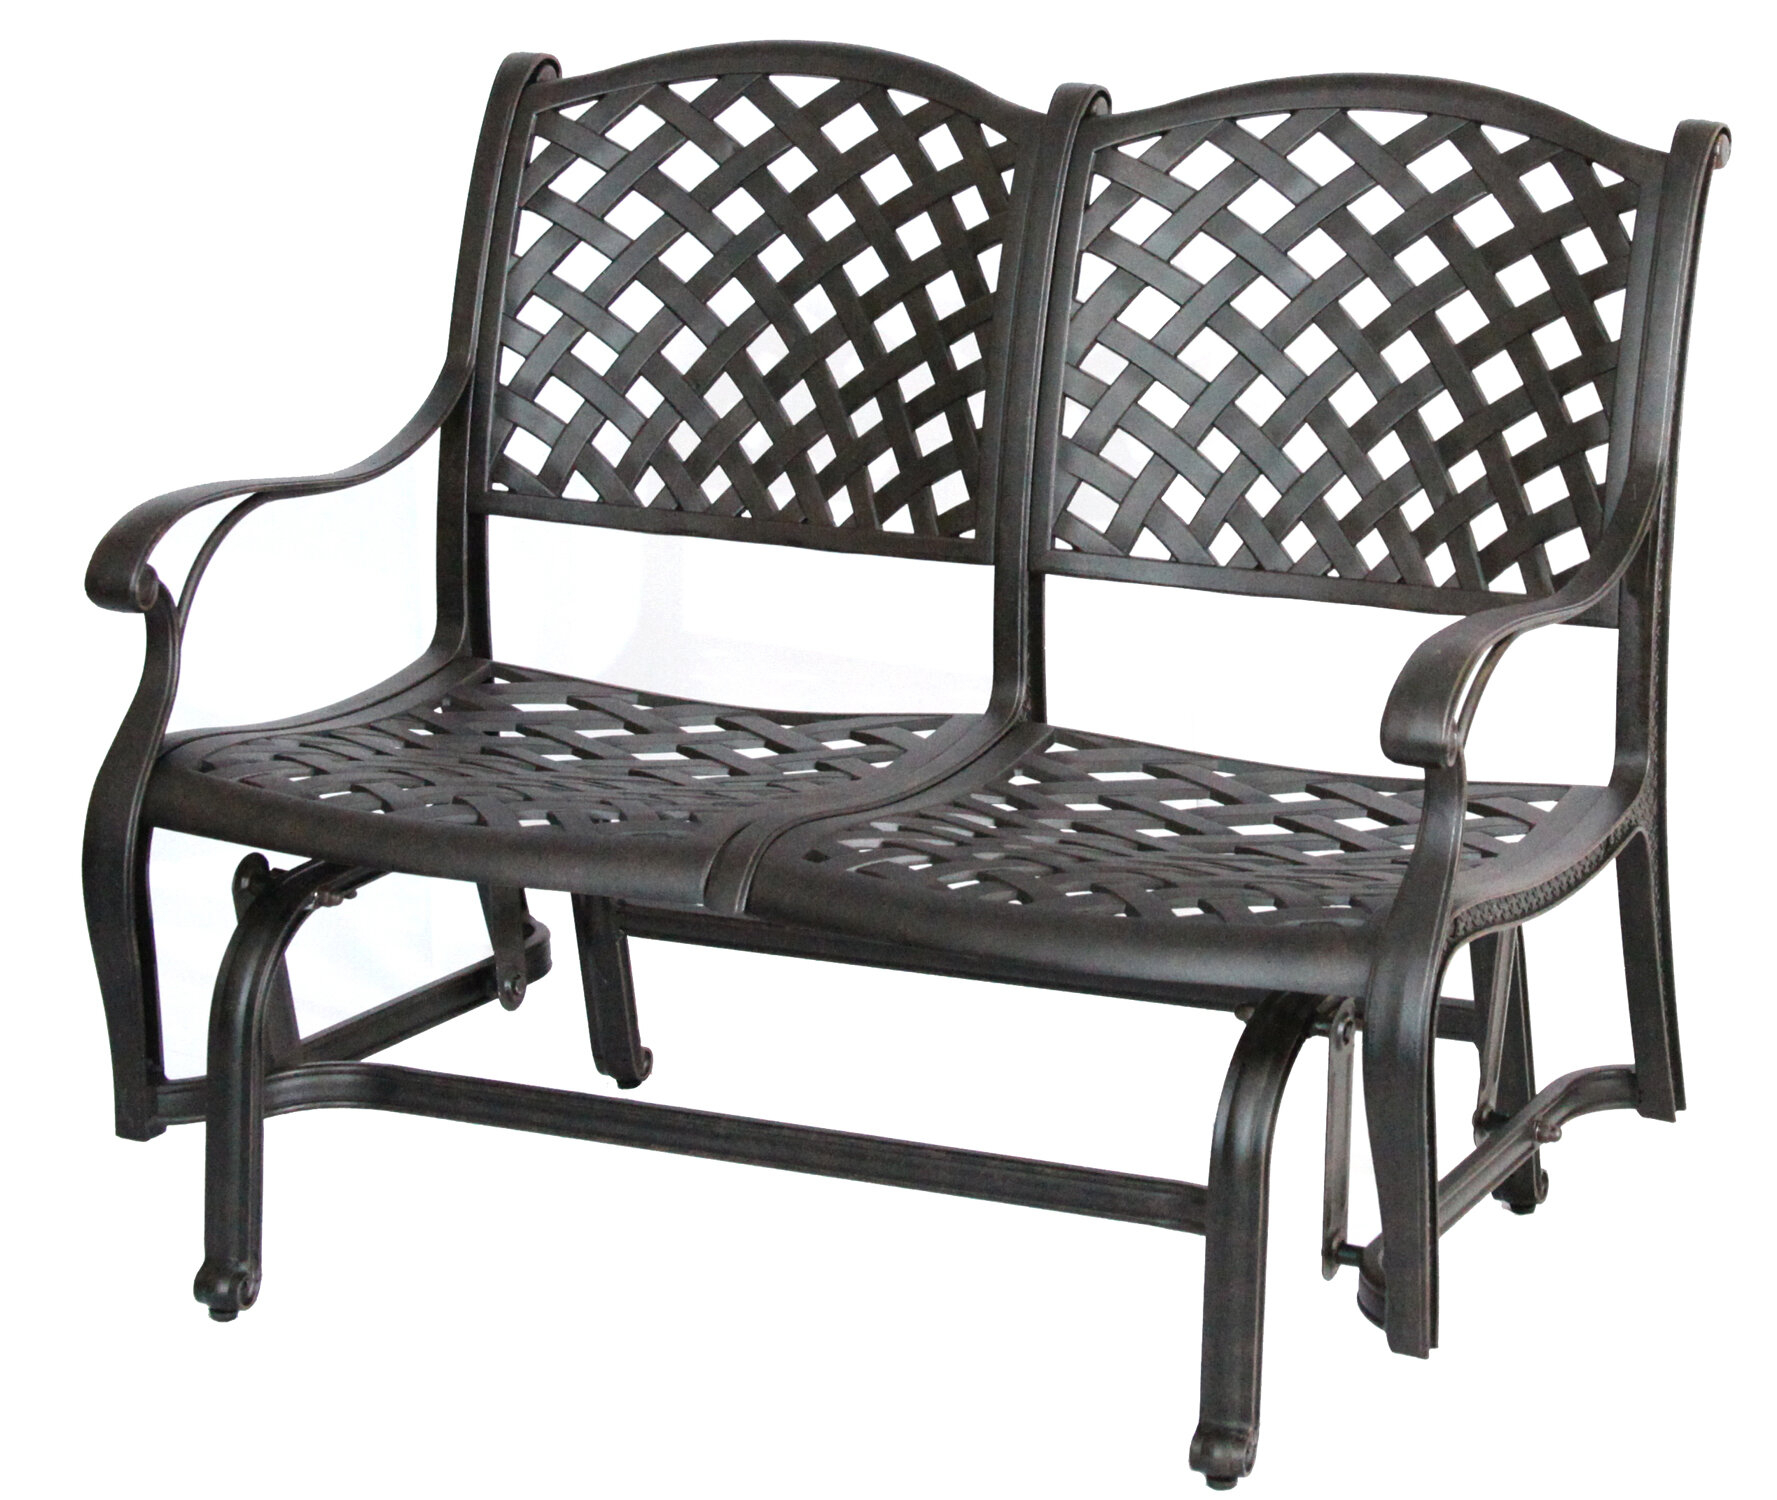 Lincolnville Aluminum Glider Bench With Cushion Pertaining To Glider Benches With Cushion (Image 20 of 25)